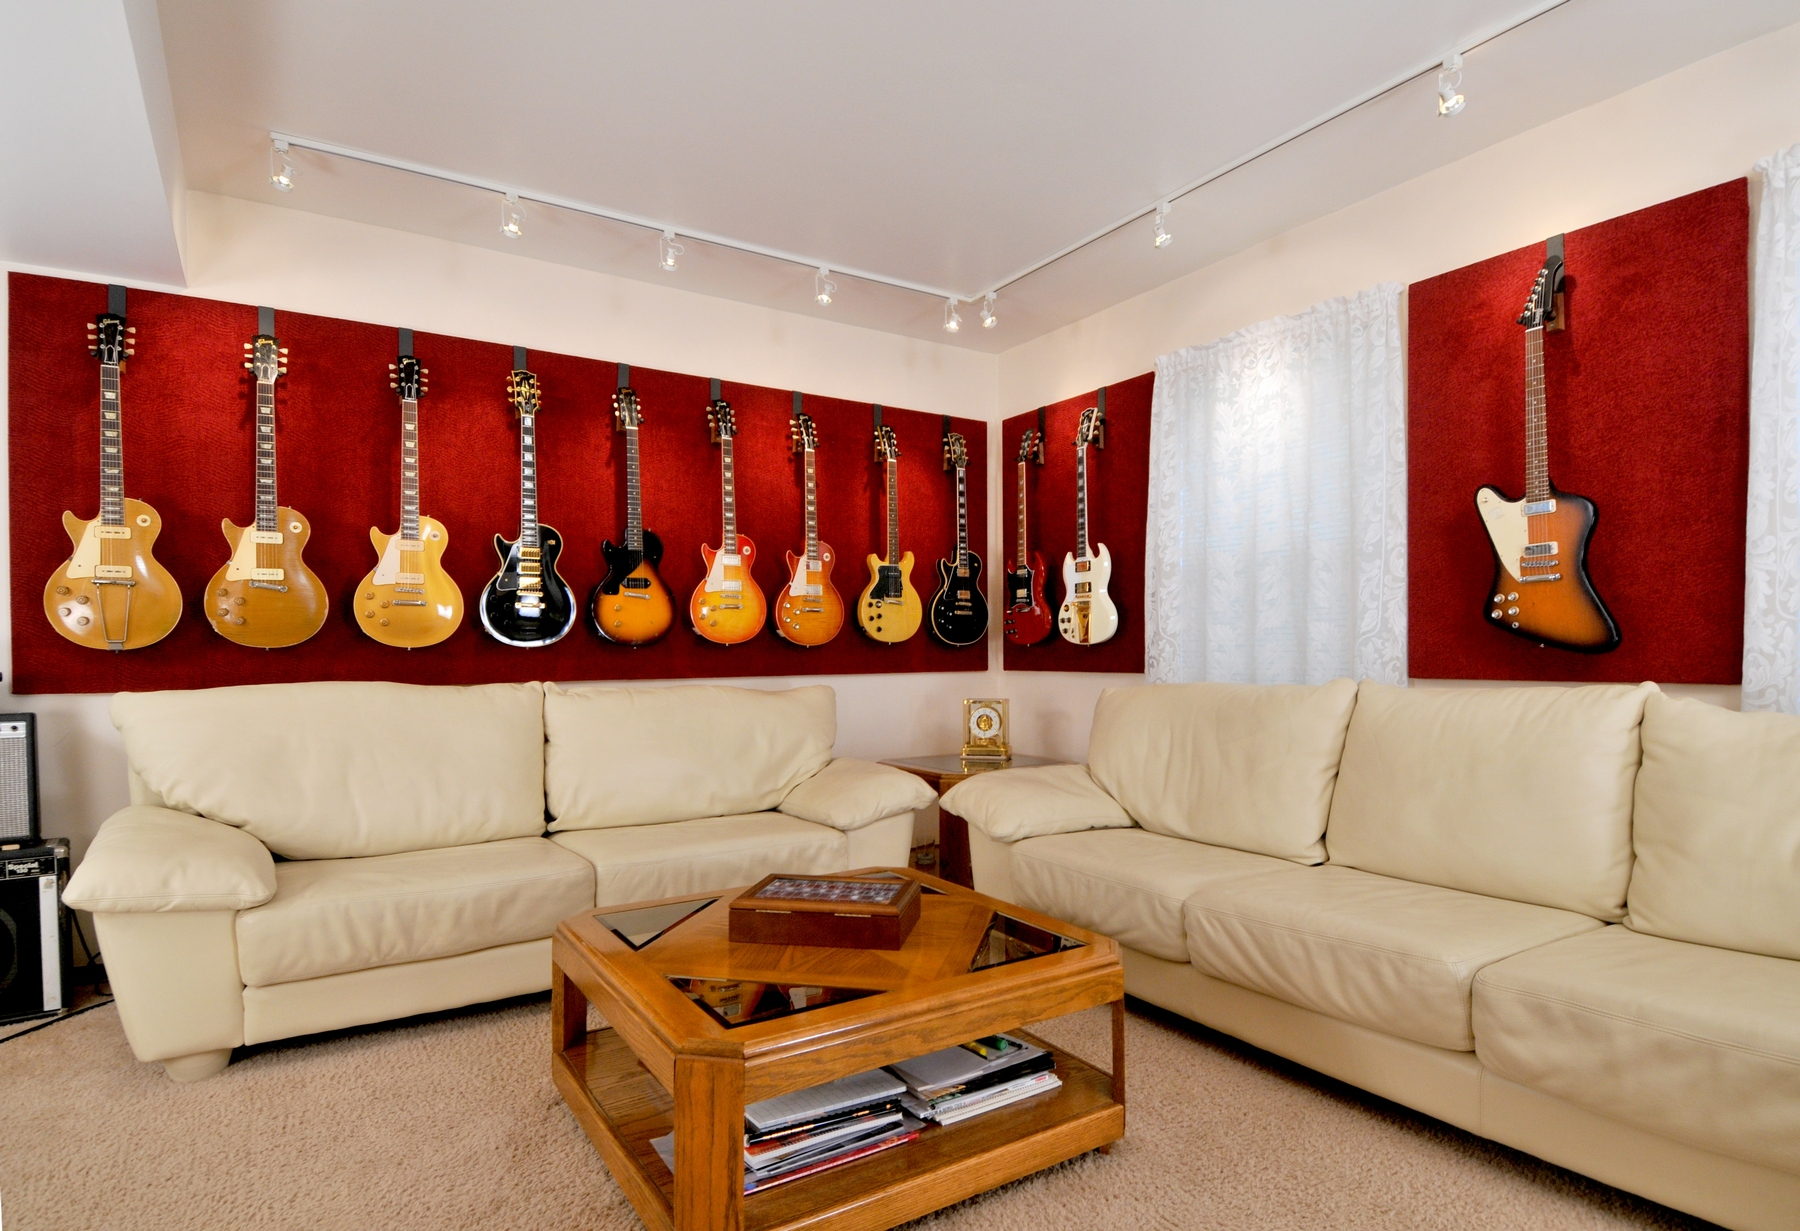 Guitar Decor For Bedroom Show Us Your Guitar Room Man Or Woman Caves Page 2